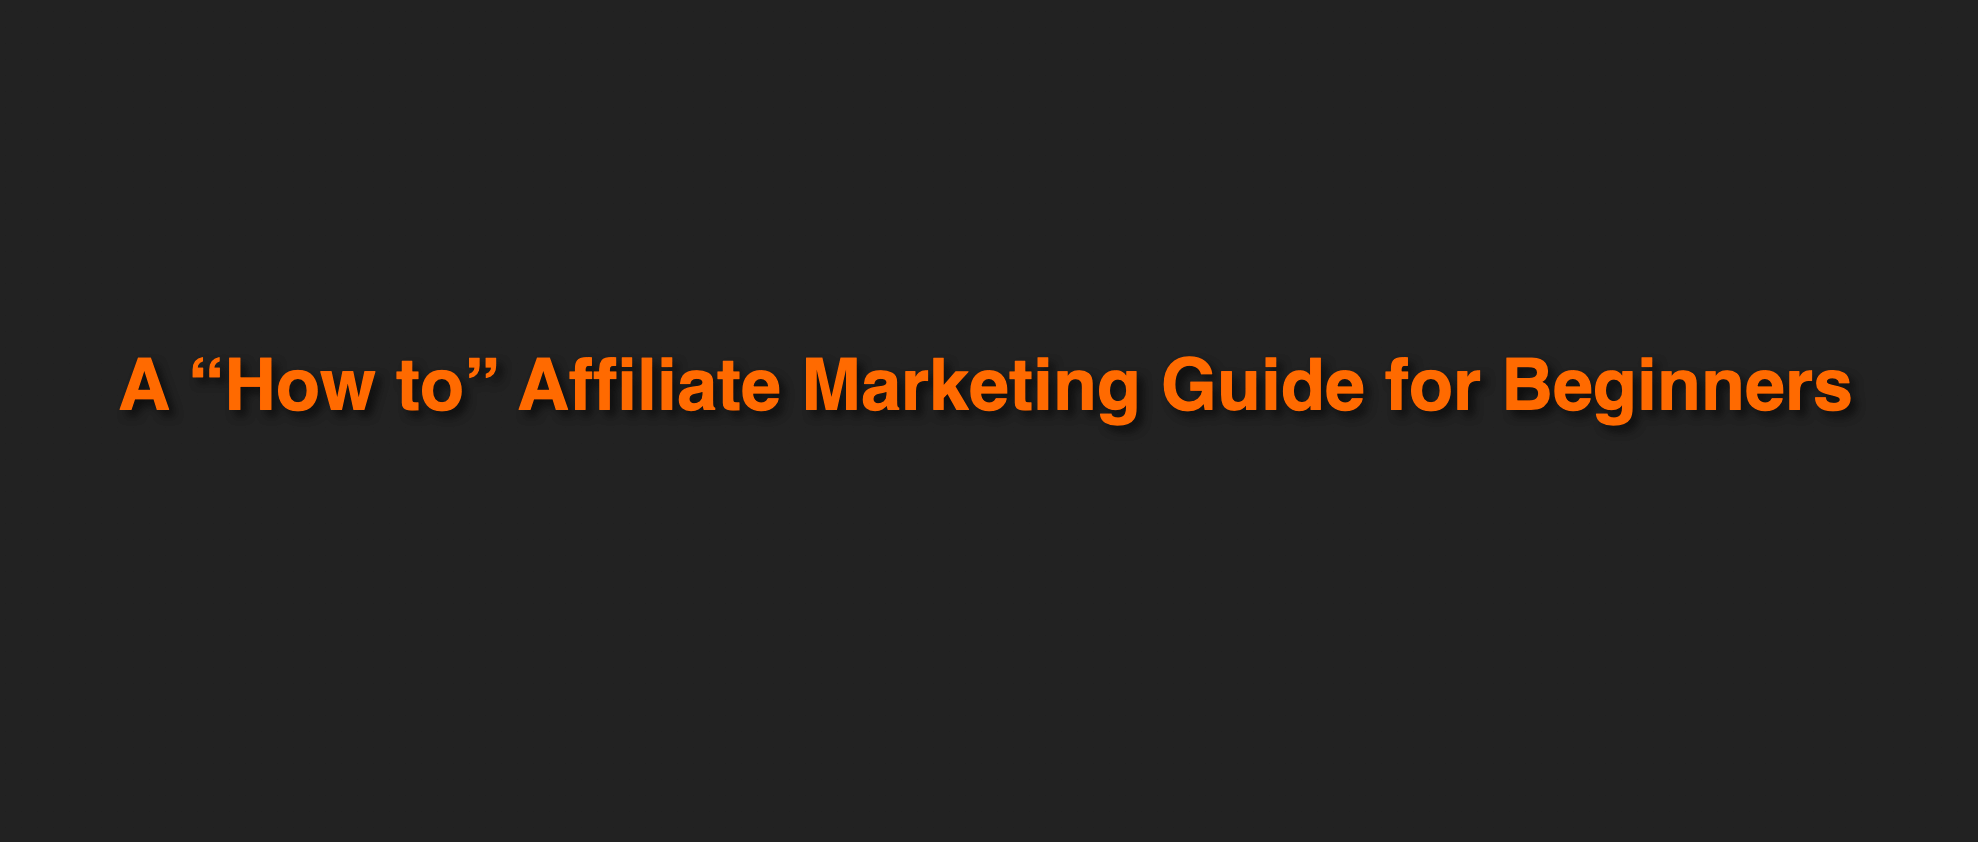 A How to Affiliate Marketing Guide for Beginners in 2020